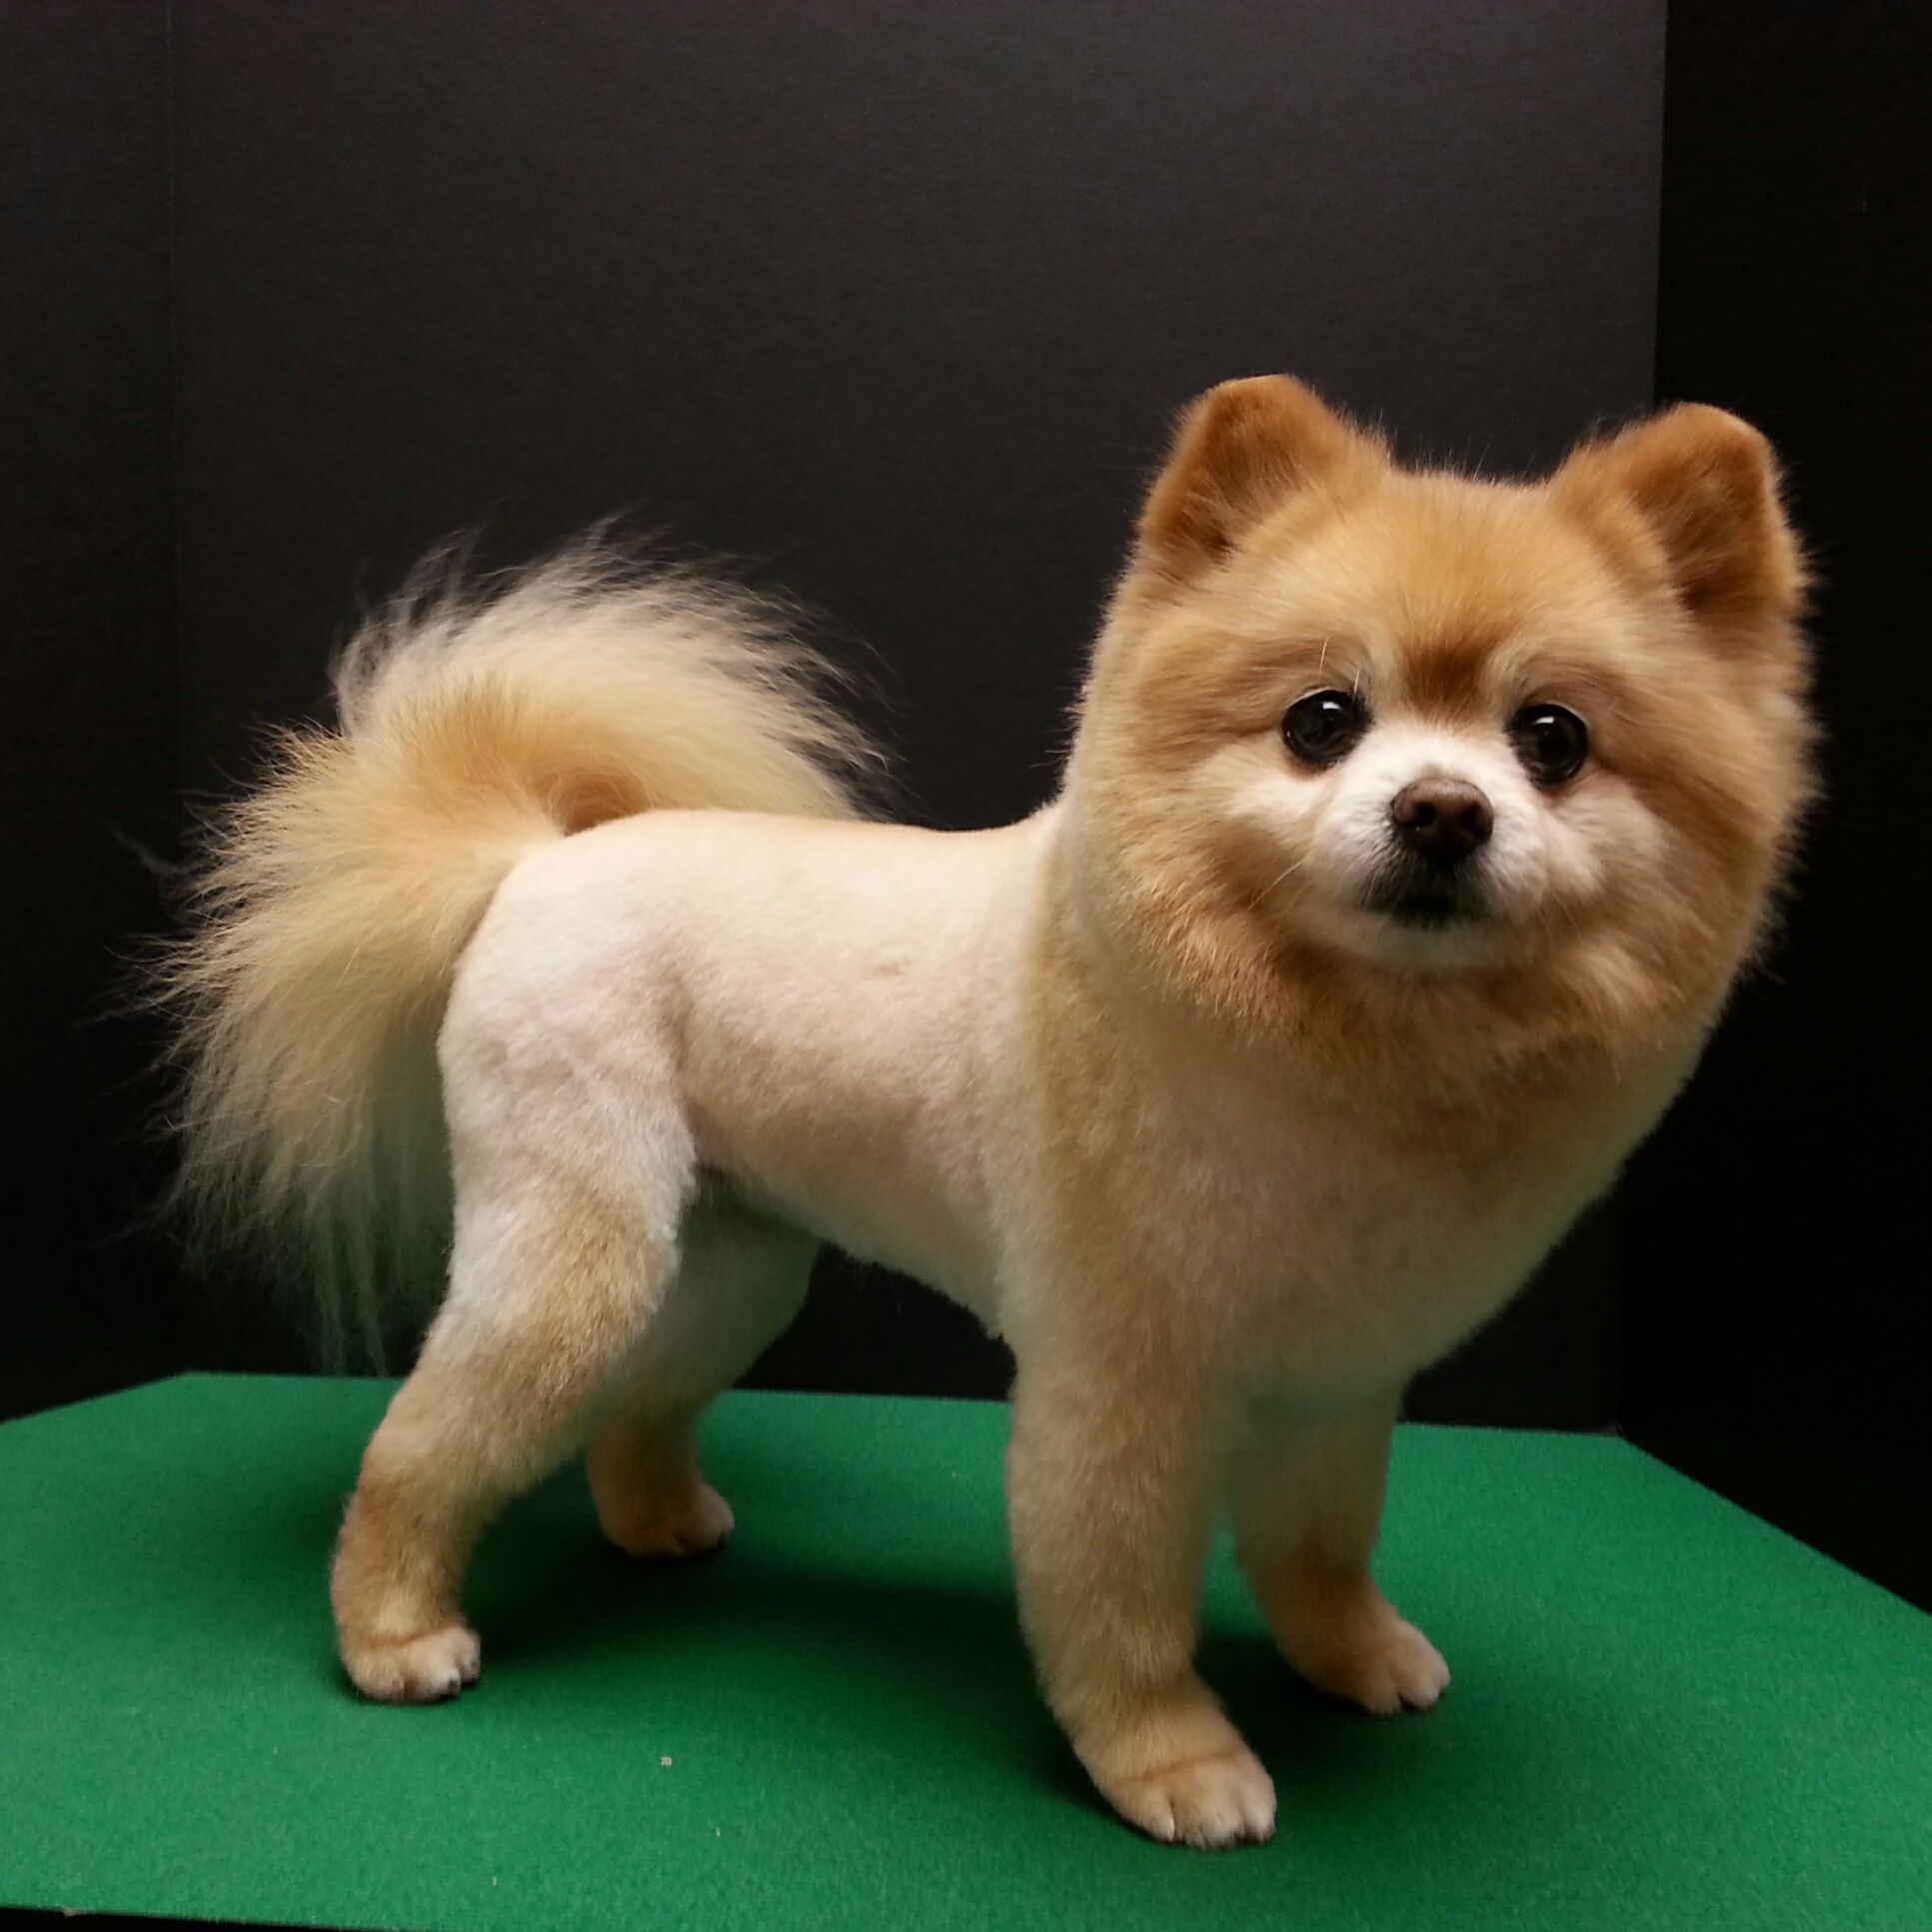 how to cut pomeranian hair pomeranian haircut pom trim lion trim lion cut dog 507